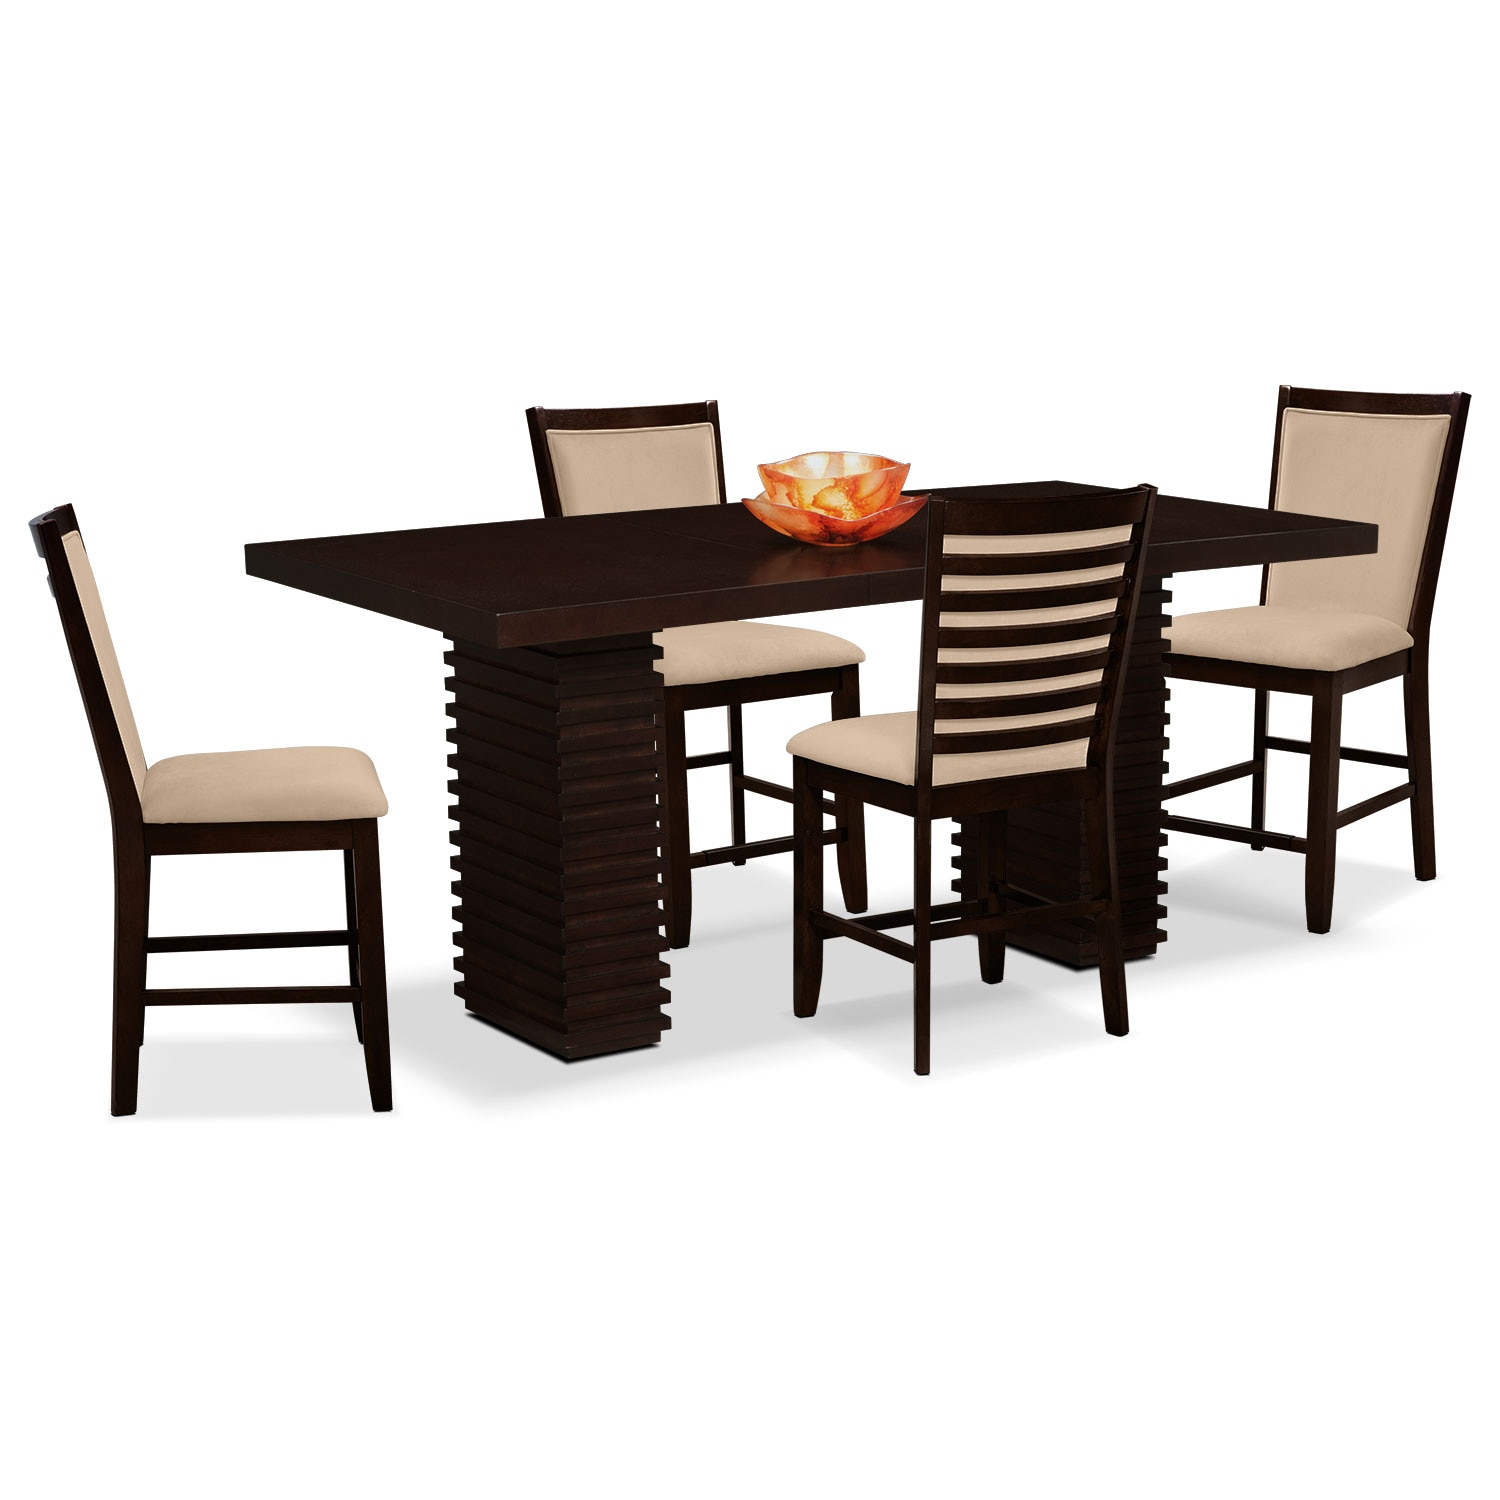 Dining Room Furniture - Paragon Counter-Height Table and 4 Chairs - Camel